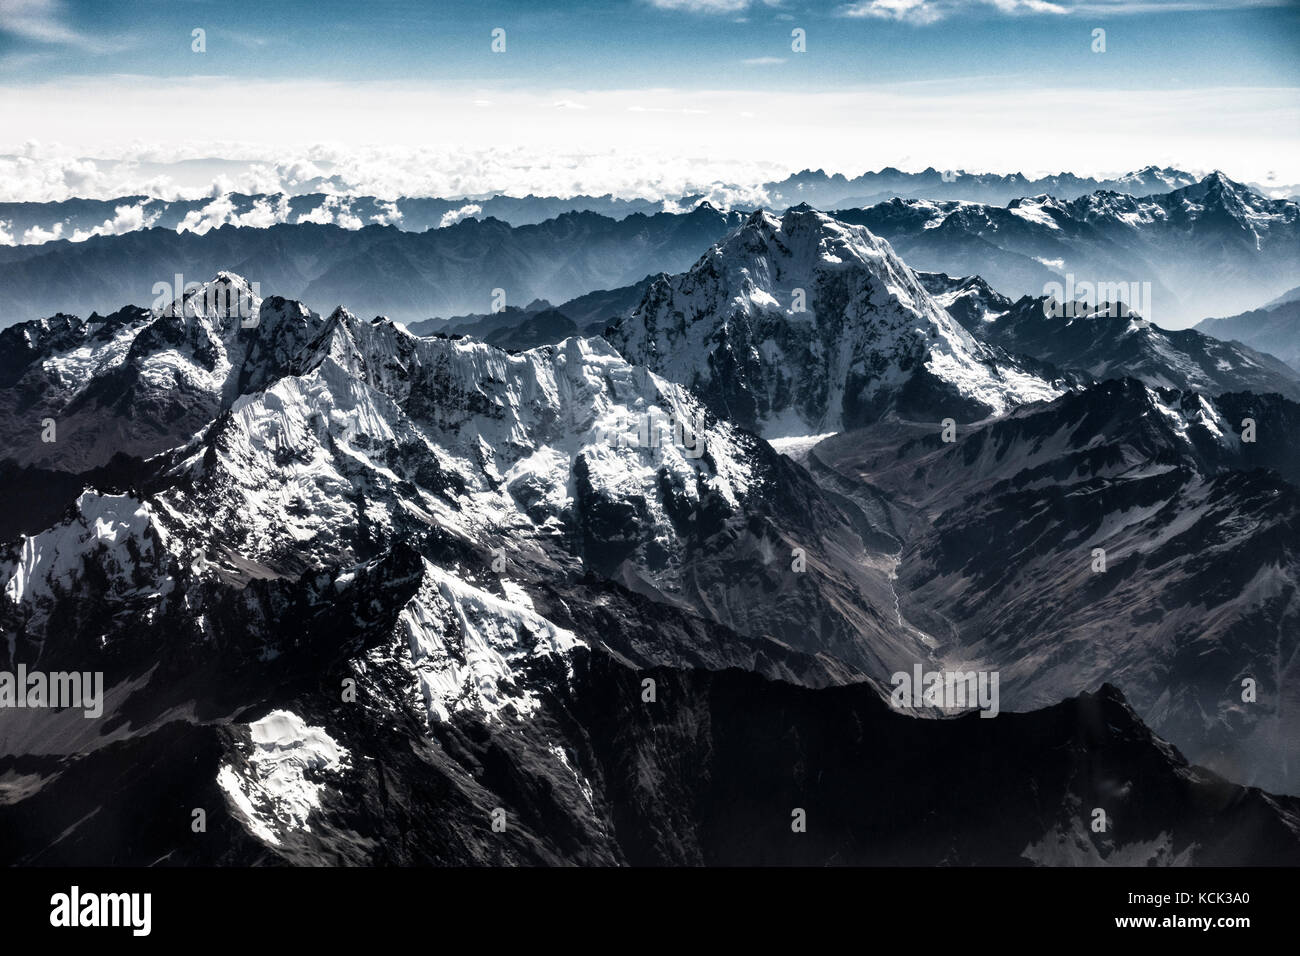 An aerial view of the snow capped Peruvian Andes, shot from an airplane on the way into Cusco, Peru. - Stock Image